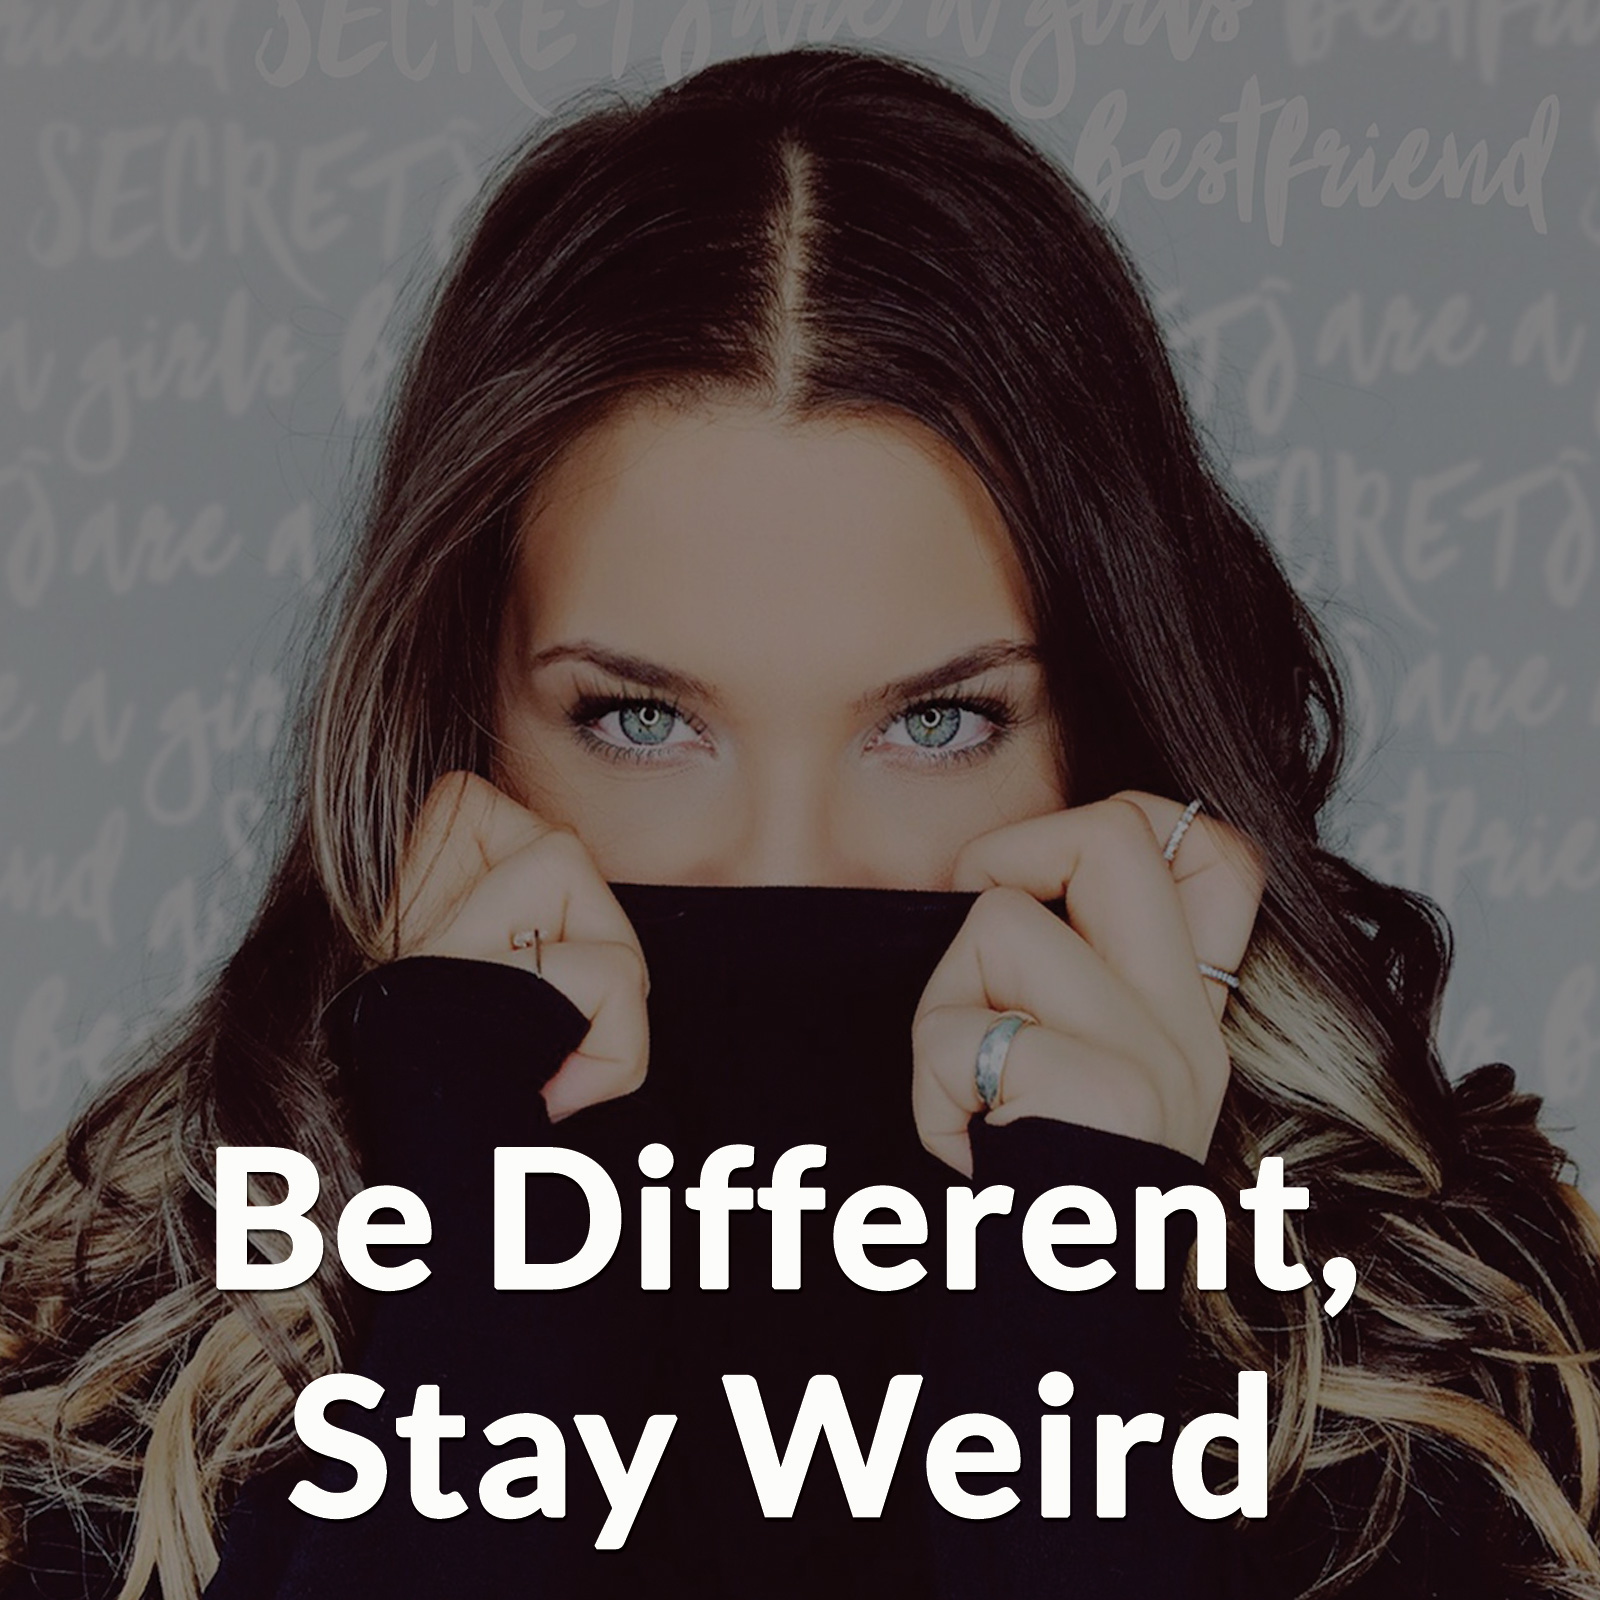 'Be Different, Stay Weird' with Dr. Dain Heer